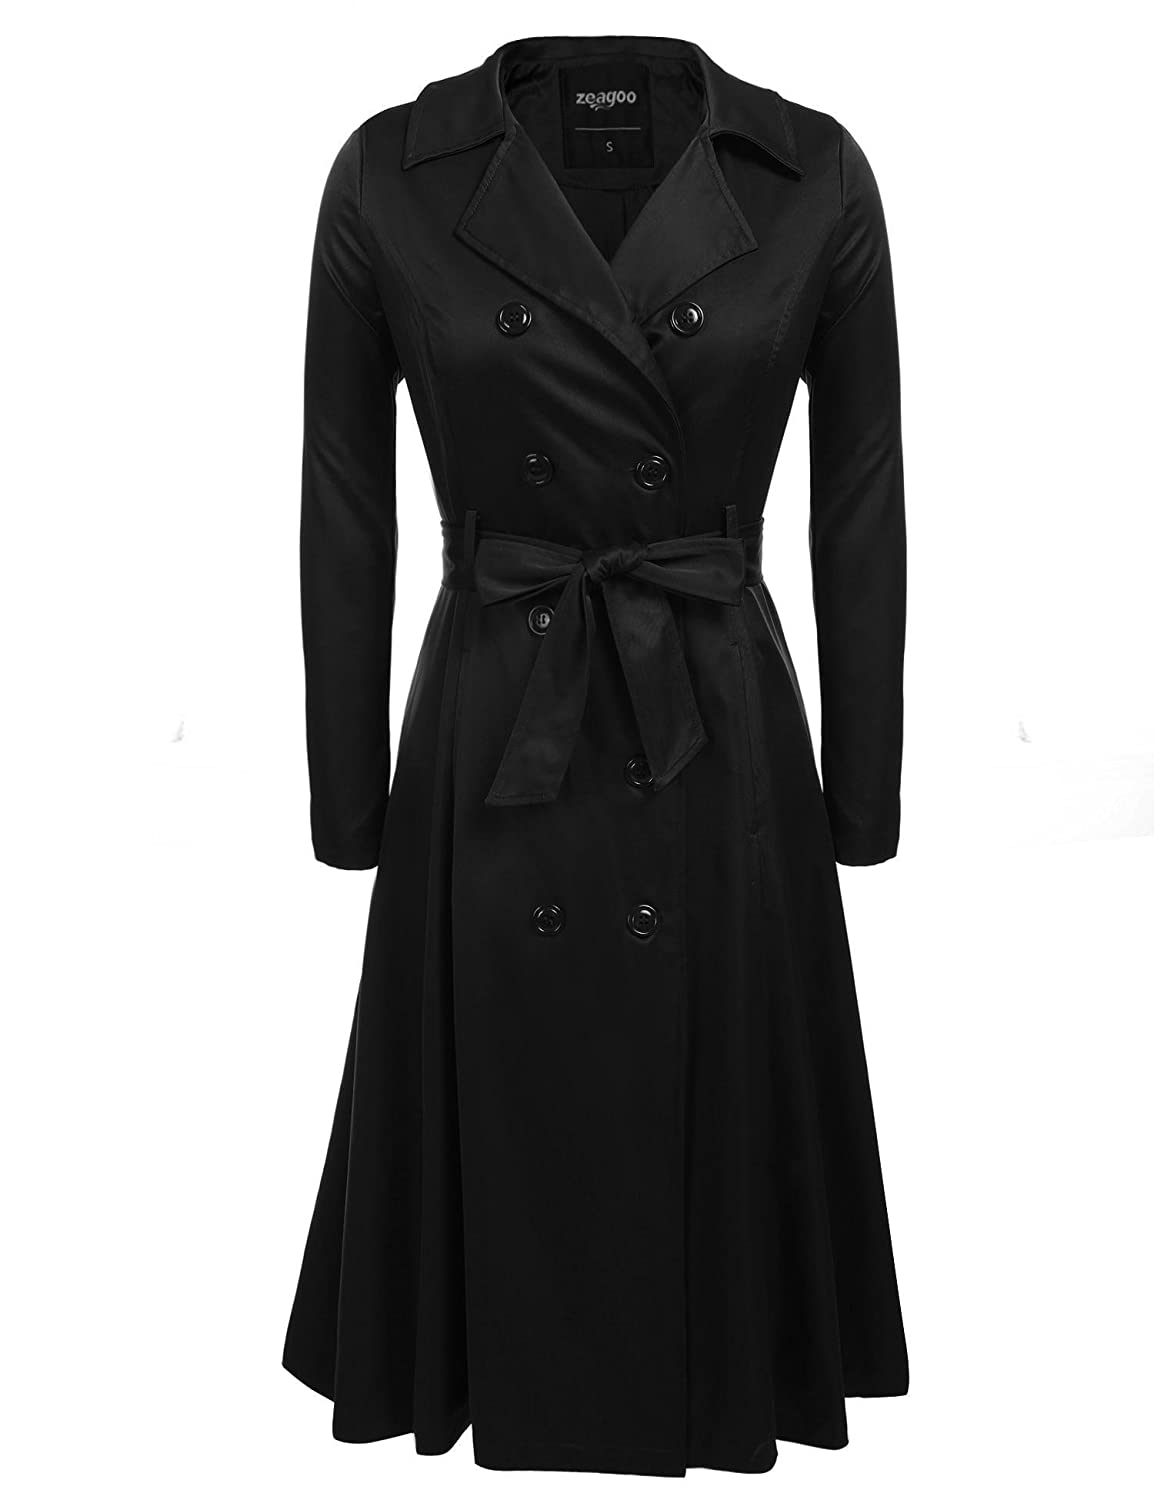 1940s Style Coats and Jackets for Sale Zeagoo Womens Double-Breasted Long Trench Coat with Belt $59.88 AT vintagedancer.com